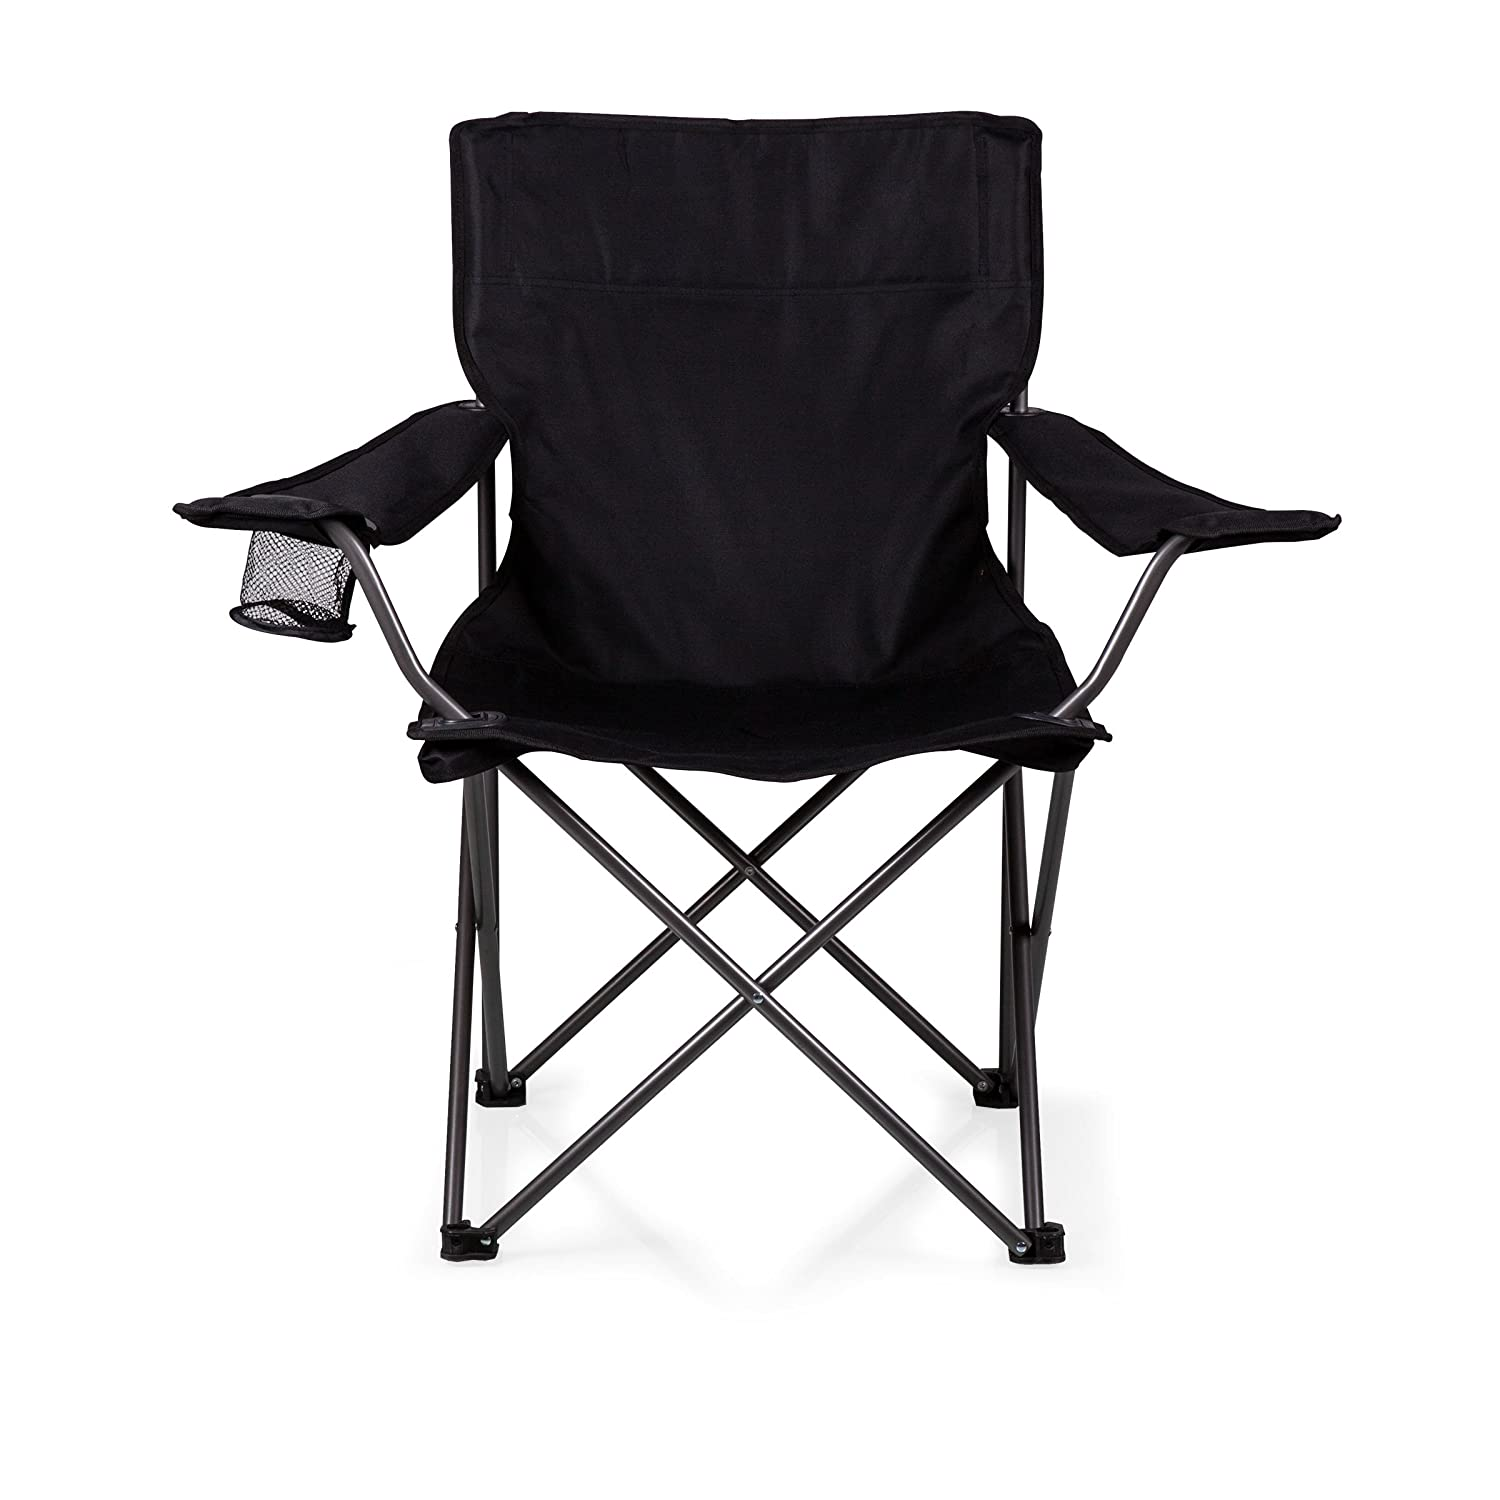 chair orbit chairs trackpack deluxe camping blue buy folding yellowstone